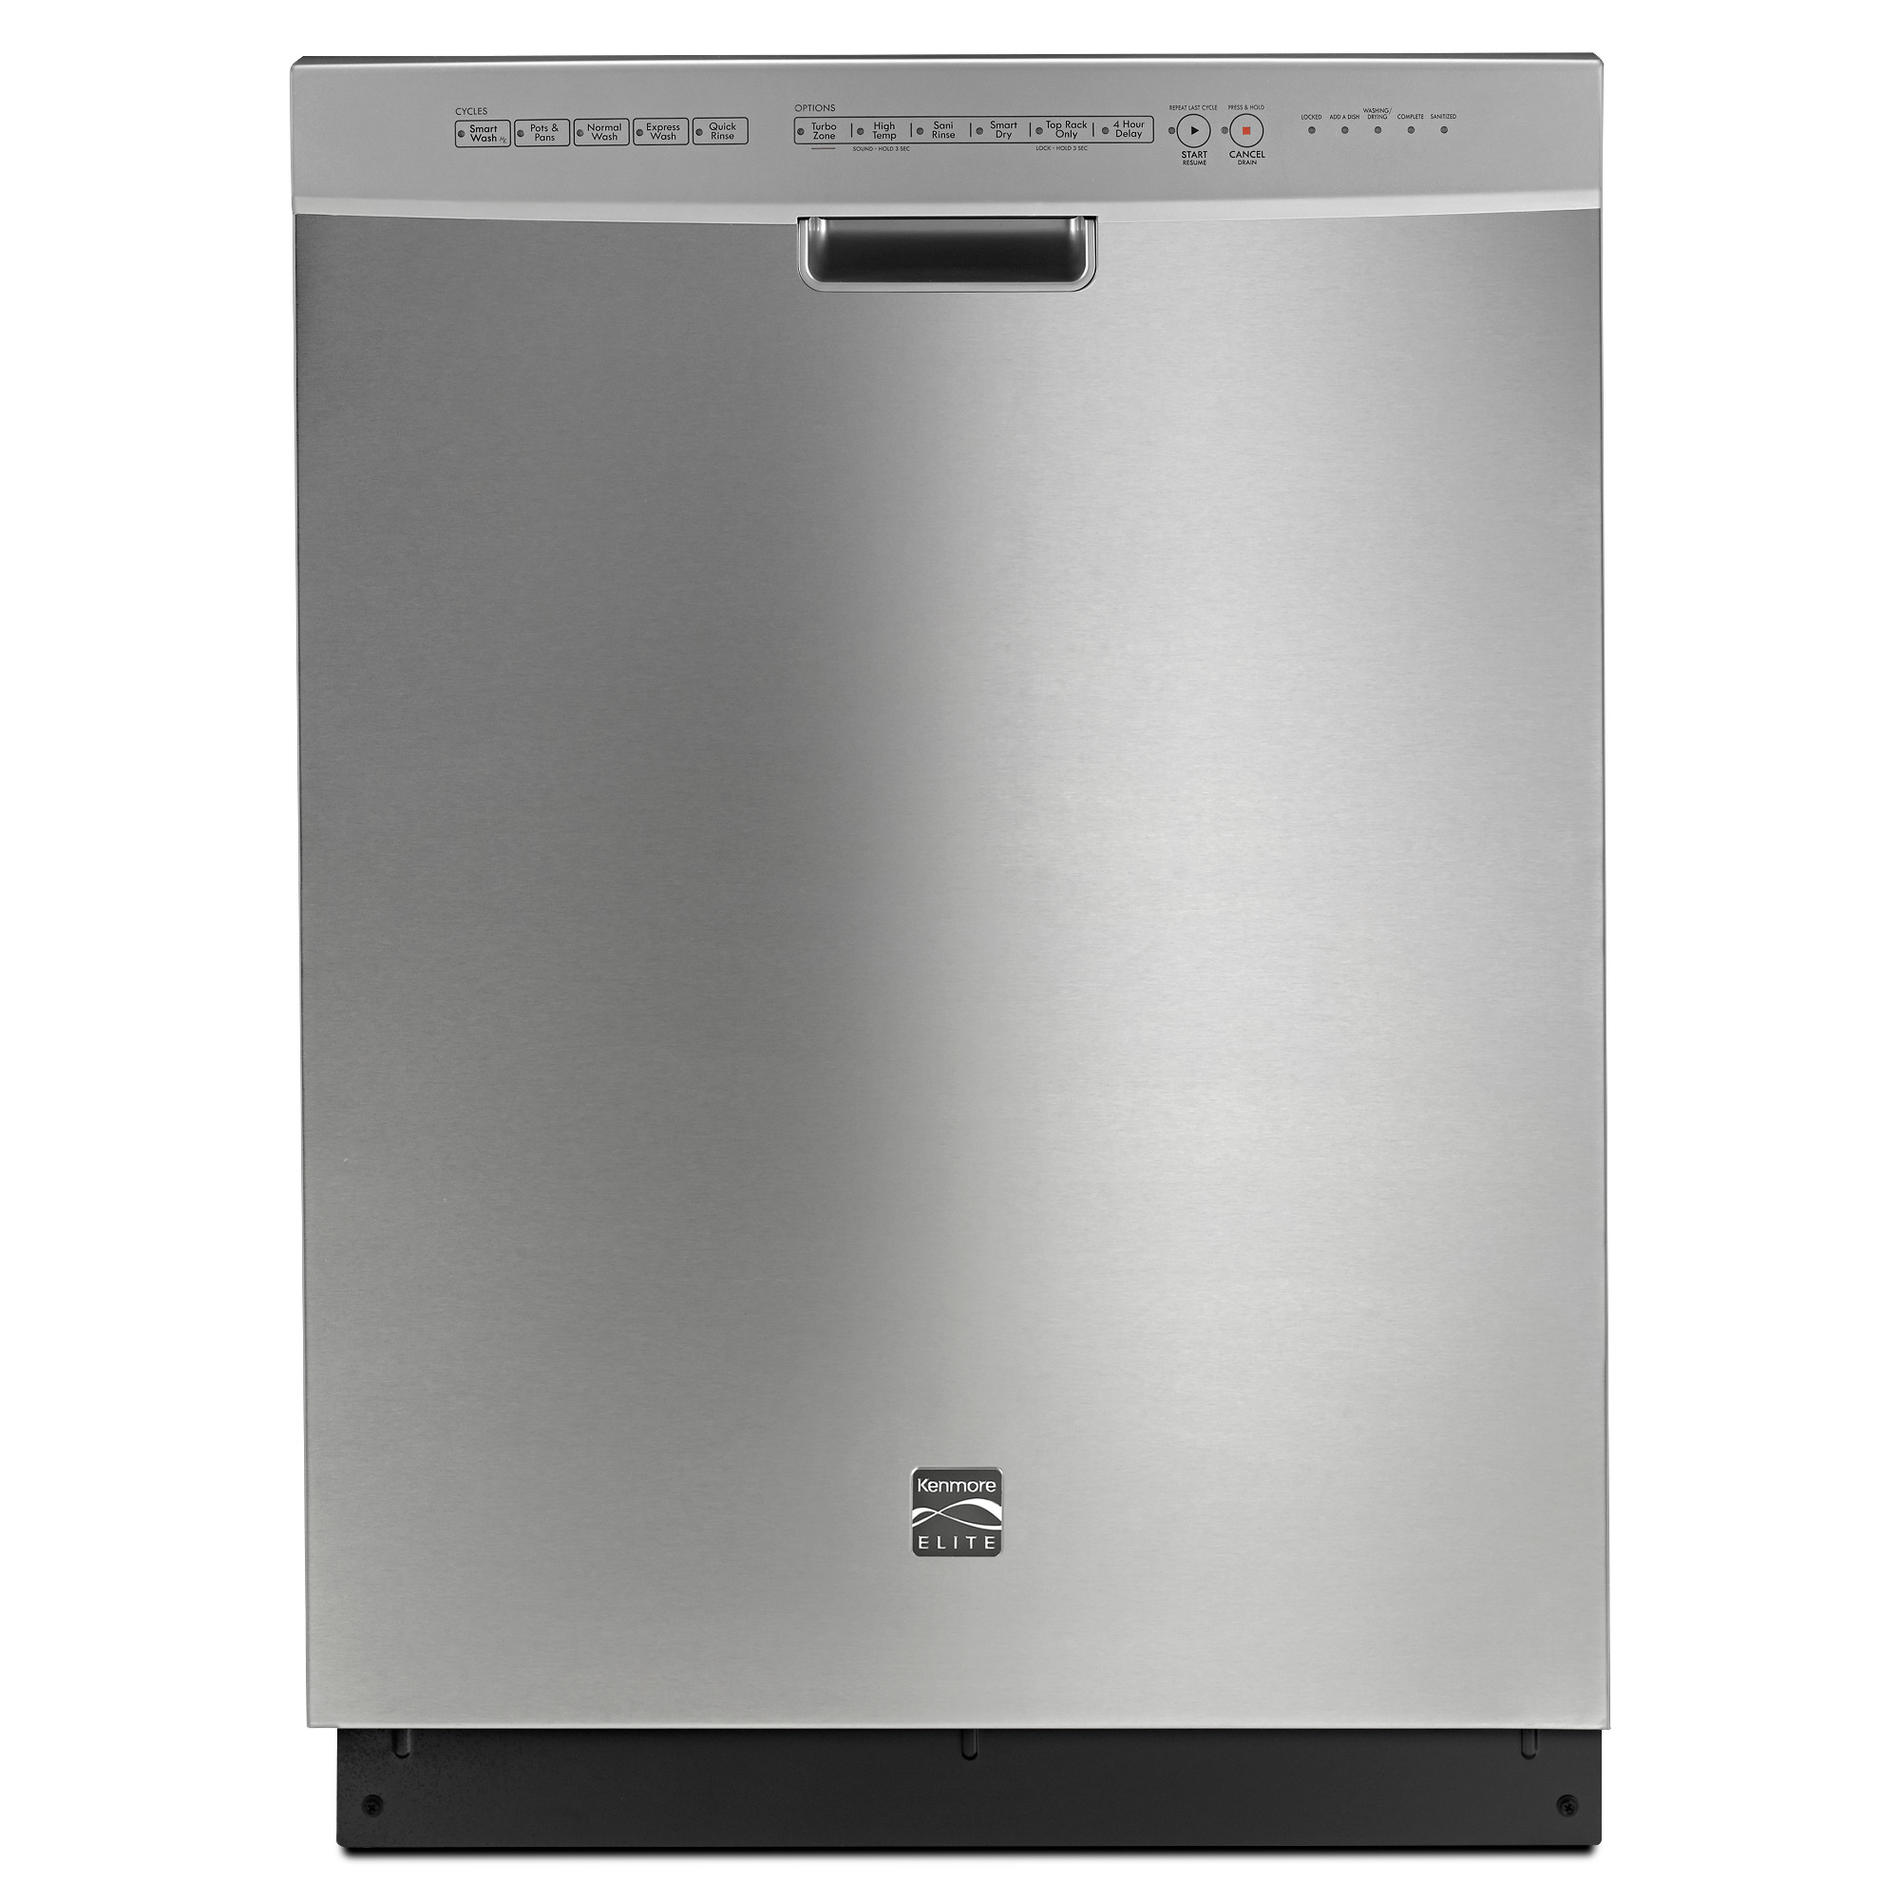 Kenmore Elite 14743 24 Built-In Dishwasher - Stainless Steel